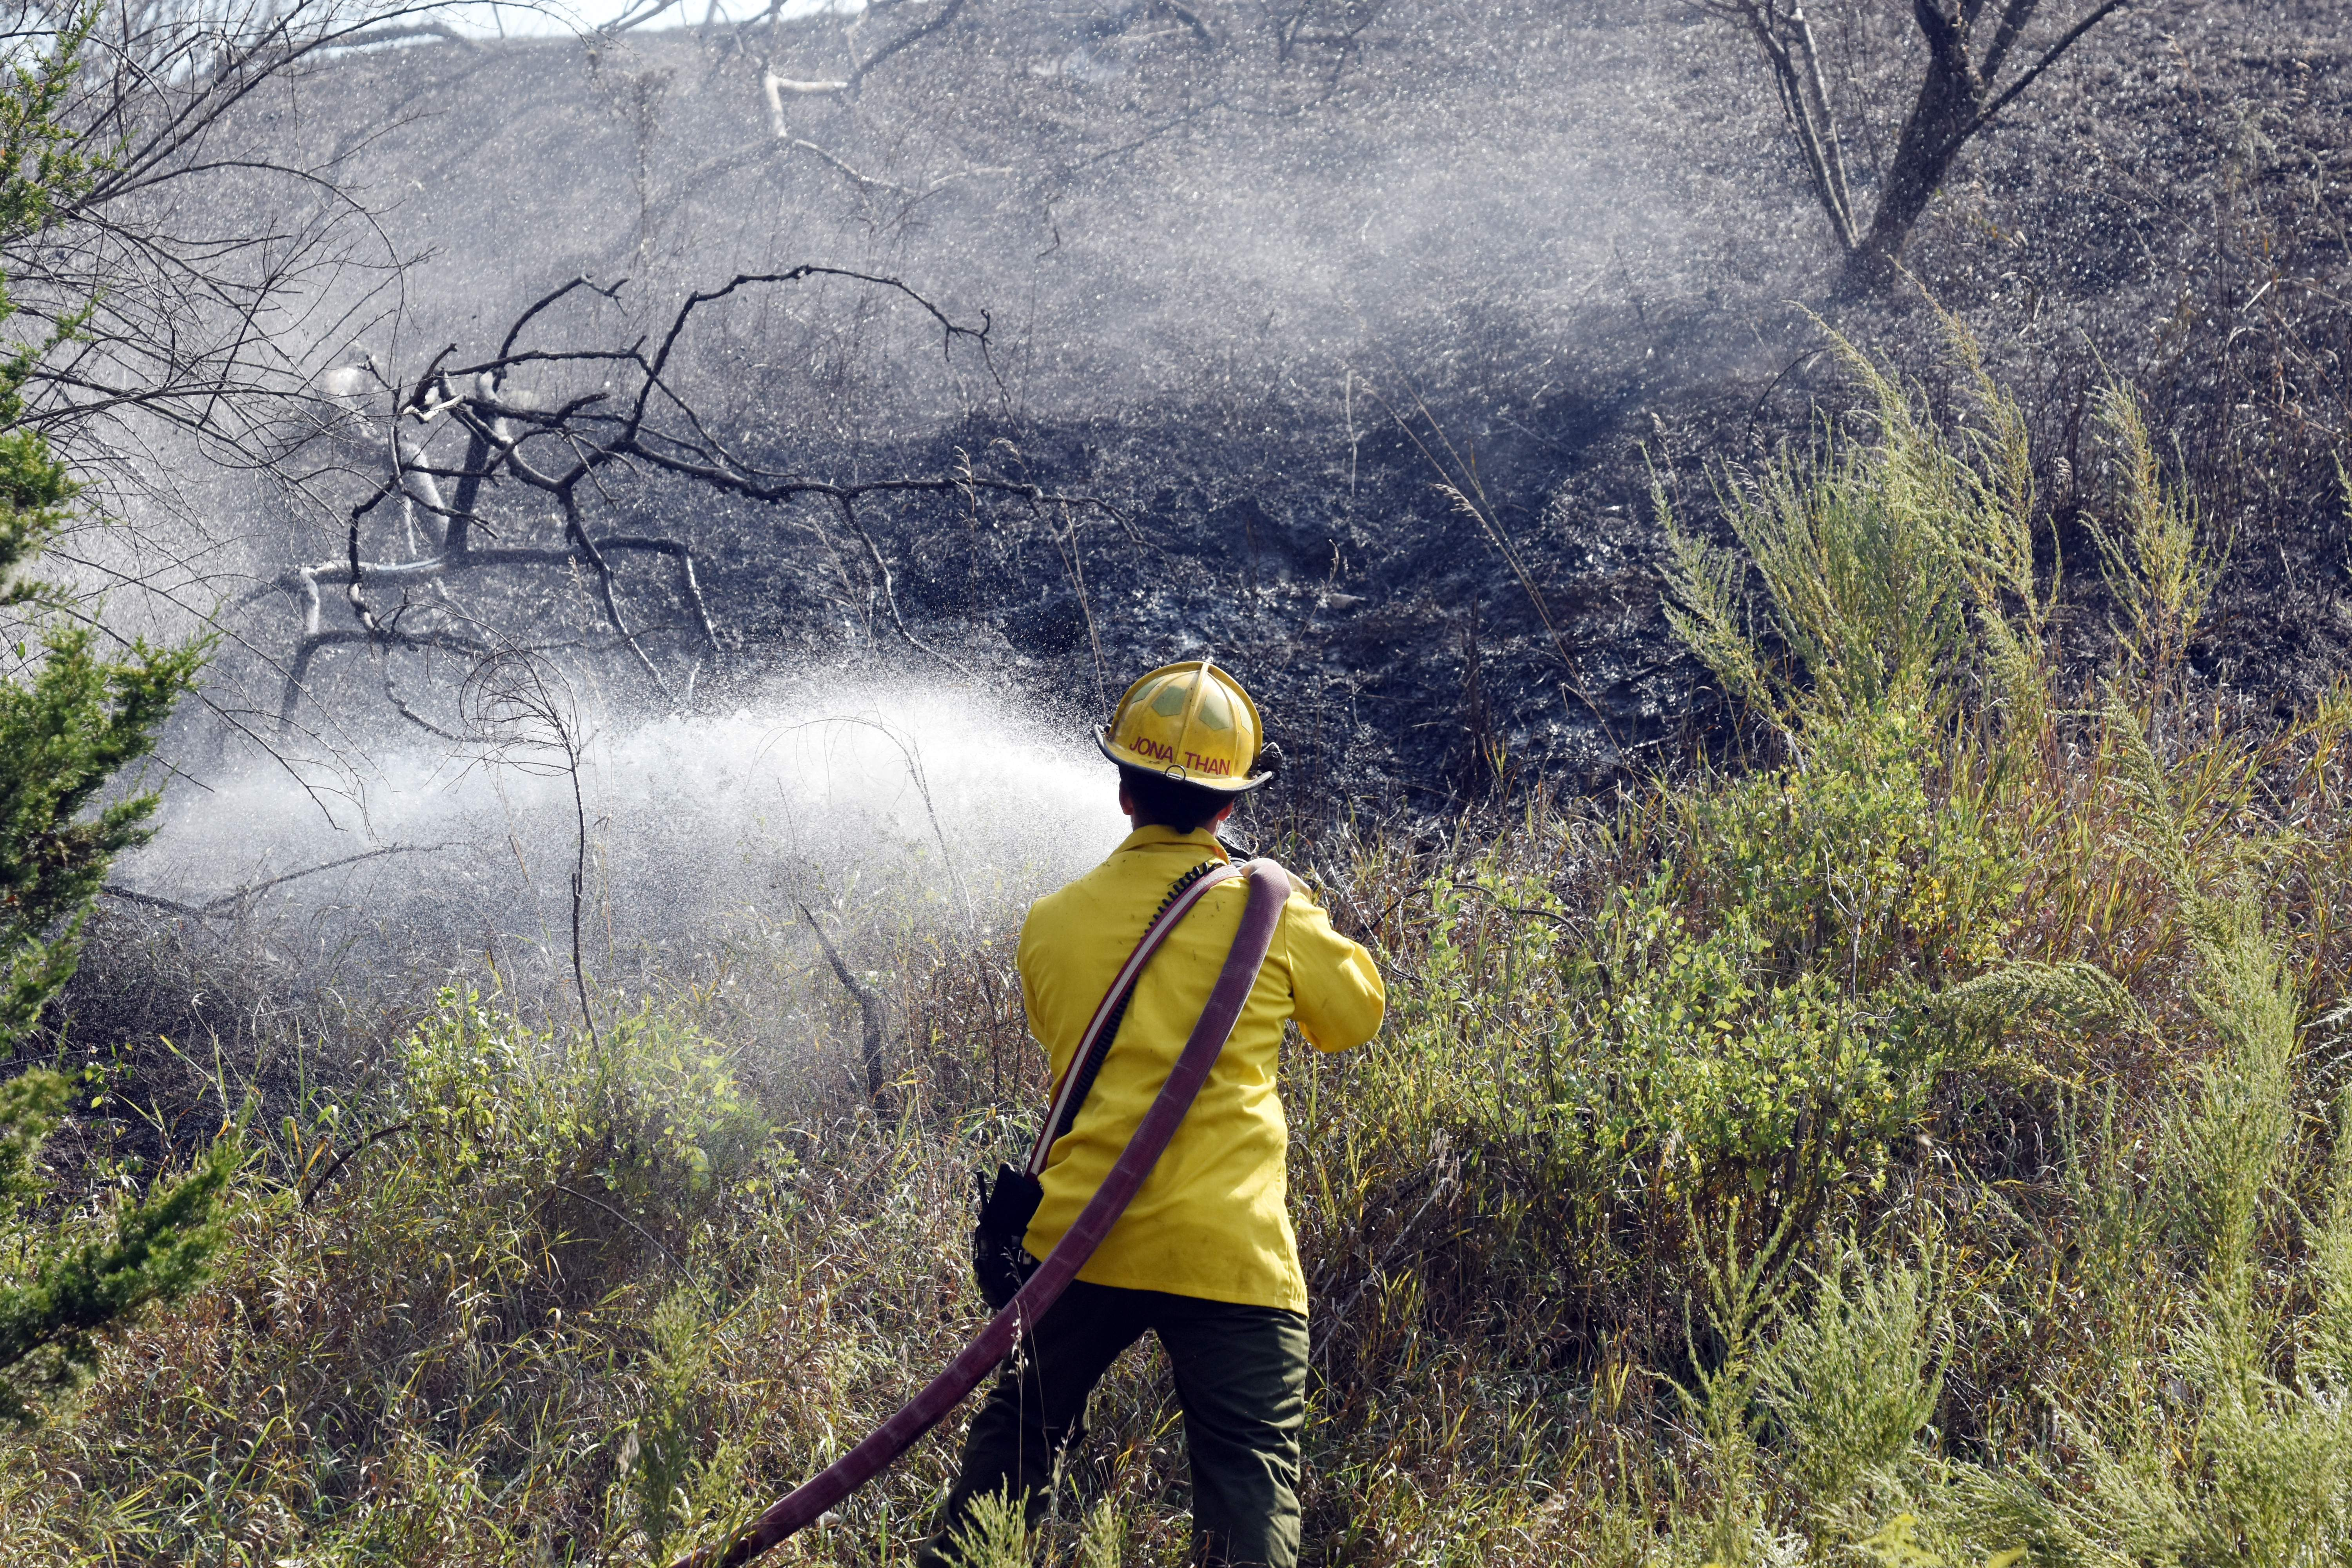 A firefighter works to extinguish a Sept. 16 brush fire in Percy near the rock pile off of Percy Road. Roughly 10 acres was burned. Both Steeleville and Percy firefighters responded to the call.